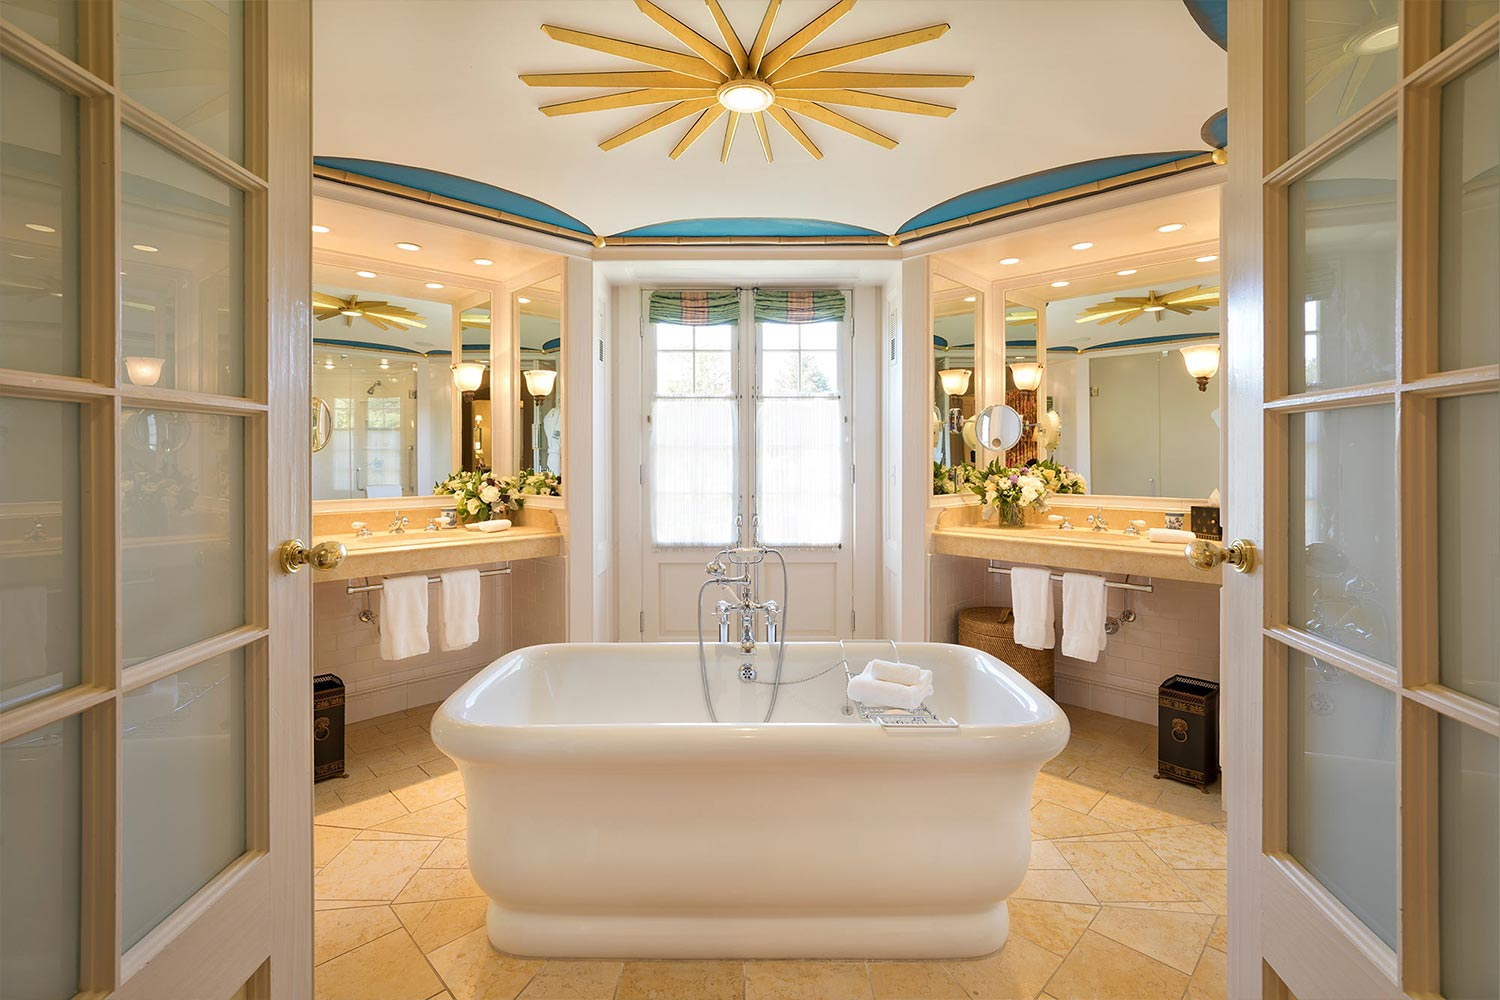 The spa like bathroom of Room 15 featuring a soaking tub in the middle of a spacious, hexagonal room.